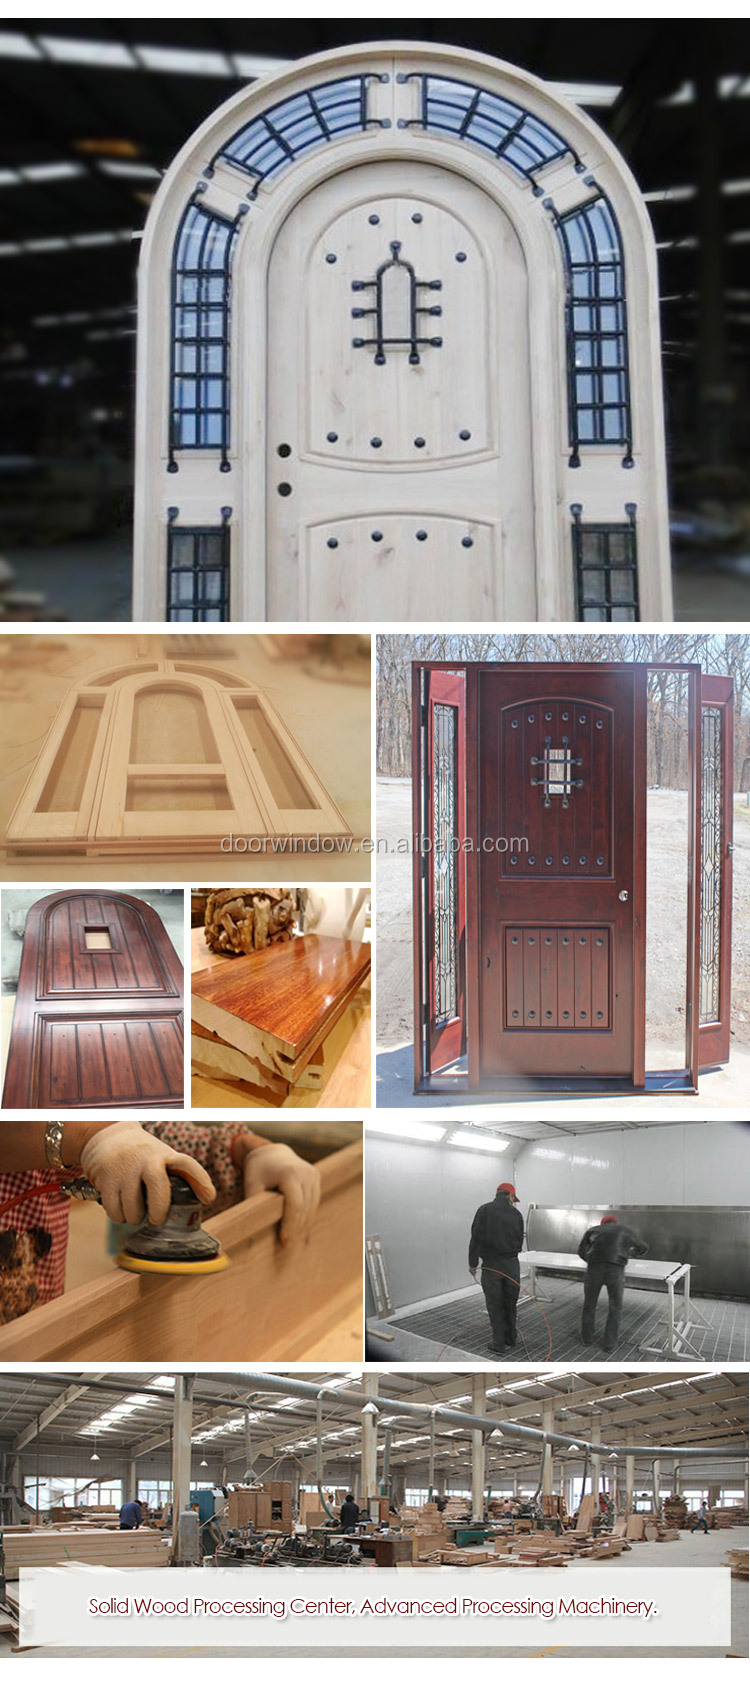 Arched top iron clavos door design with Q-Lon weather strip insulation and solid wood front door frame